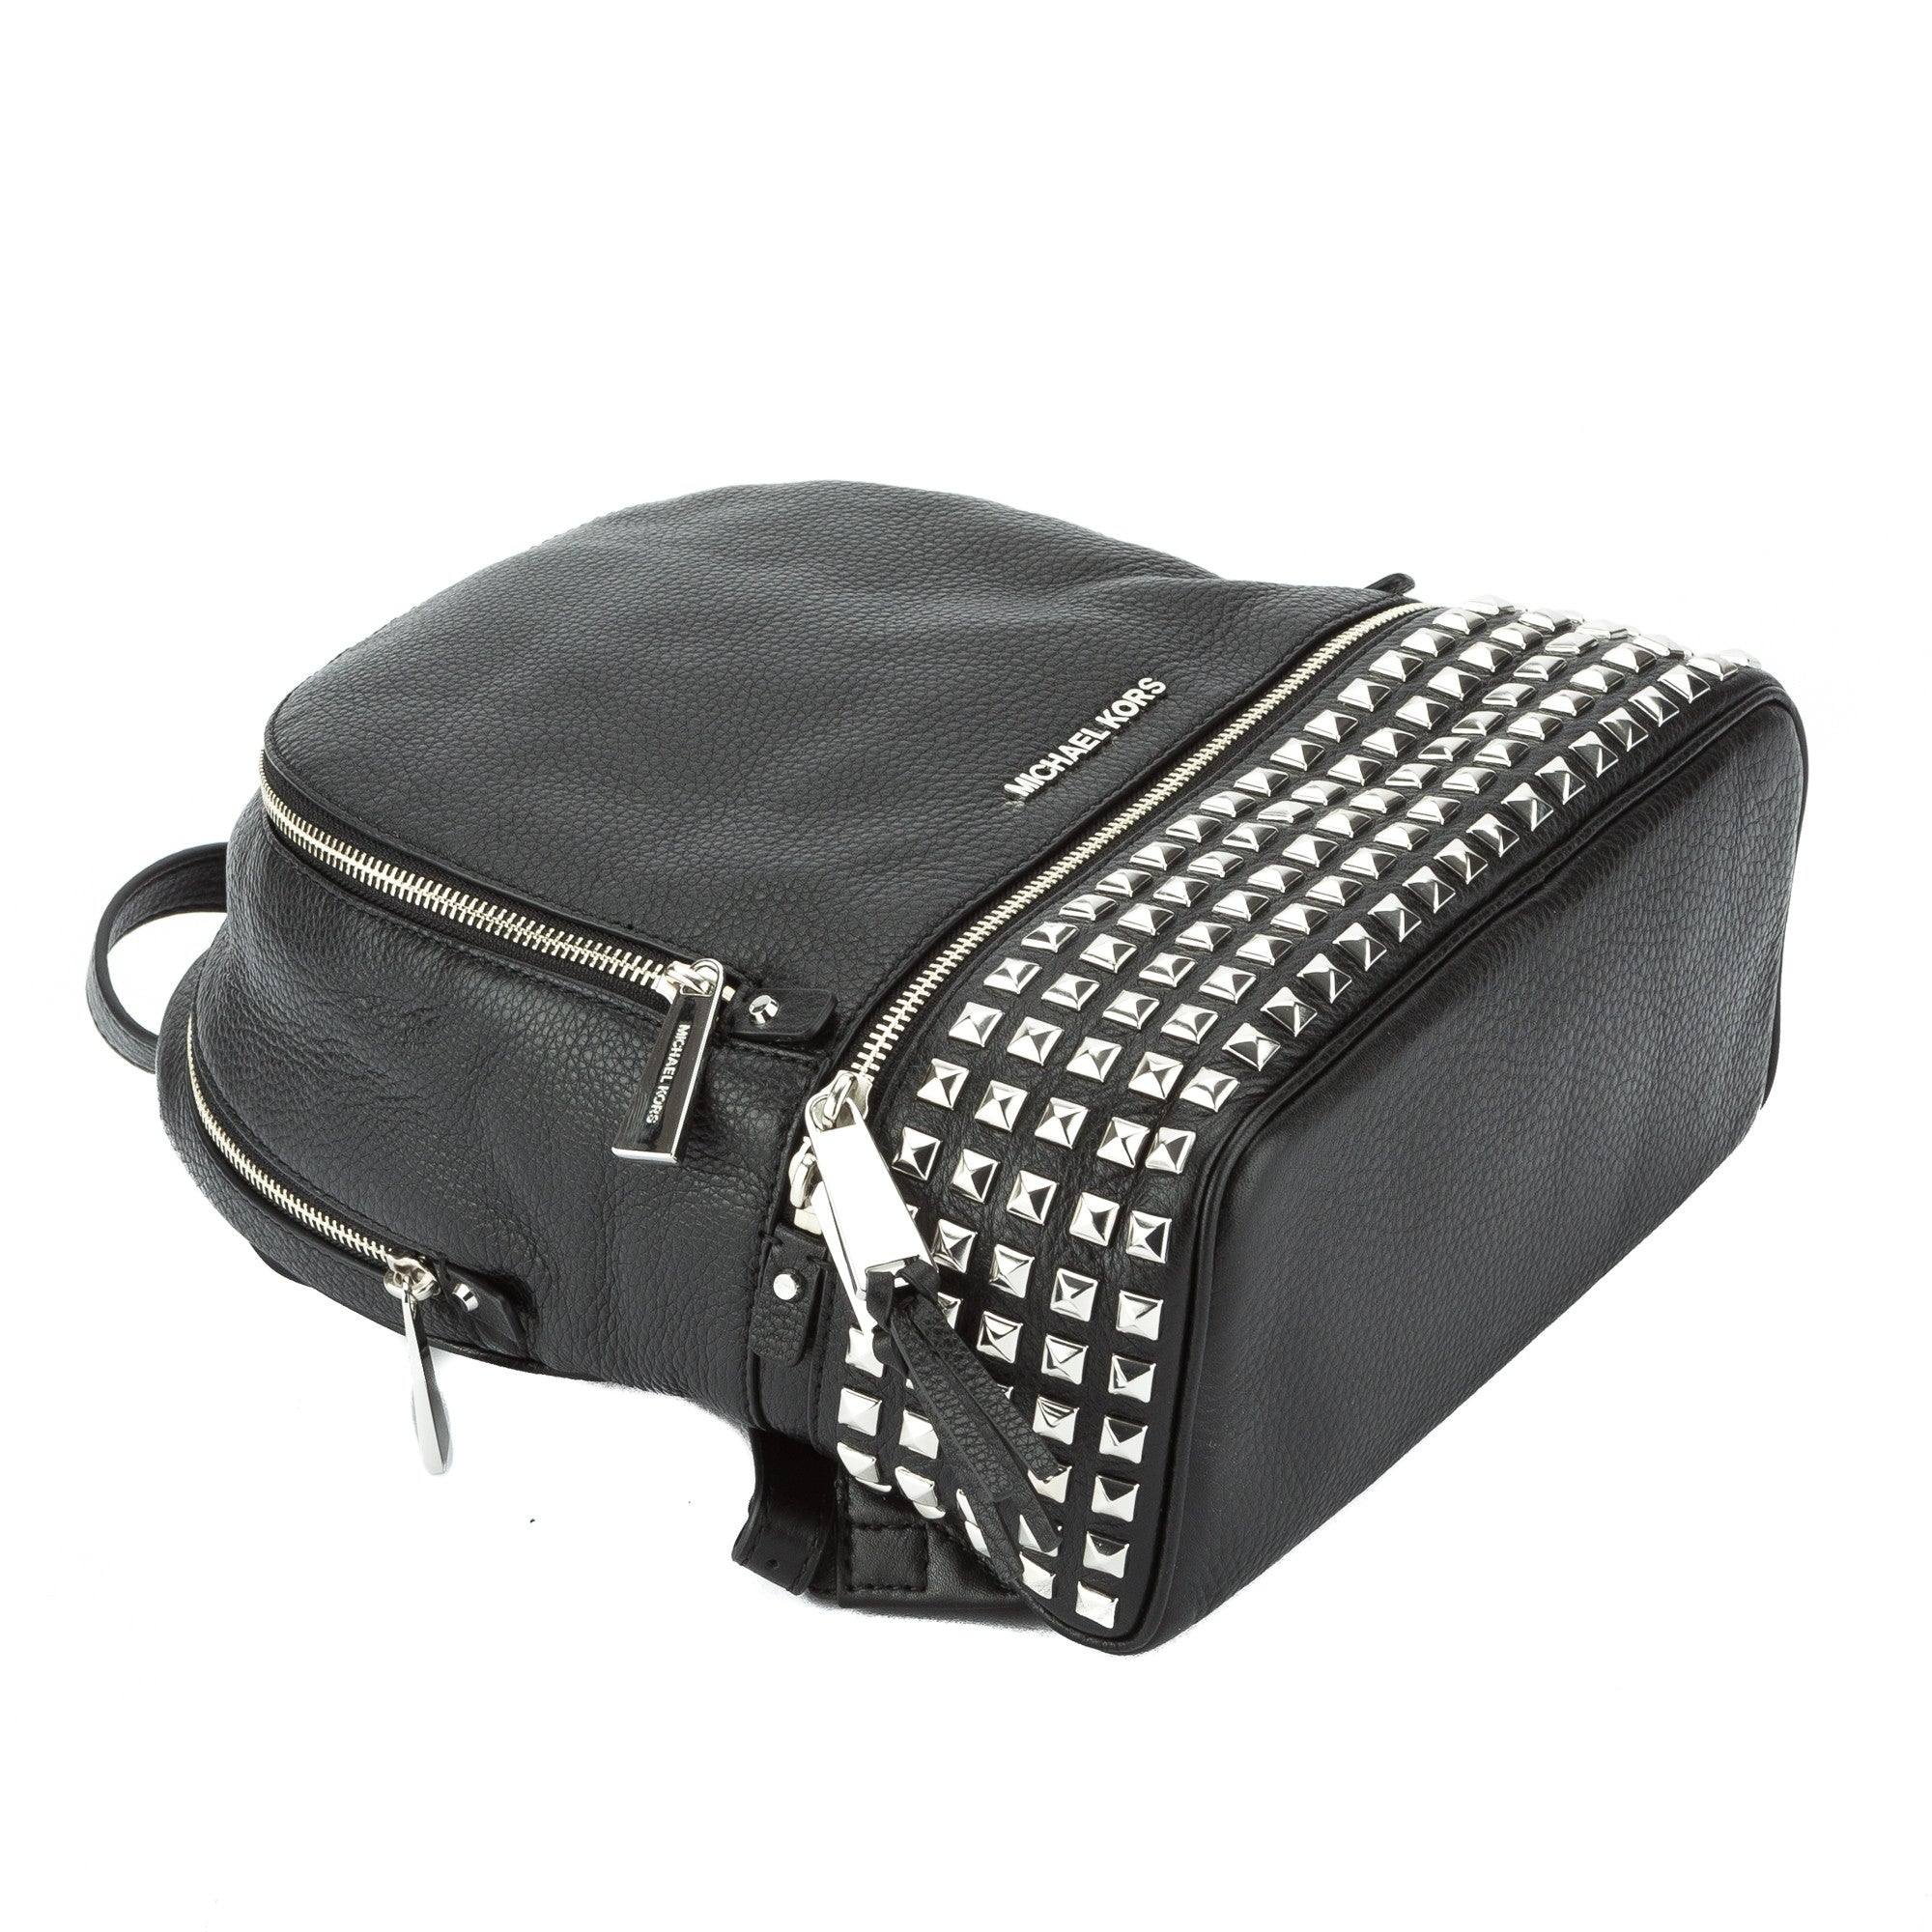 02a2f875d294 Michael Kors Black Rhea Small Studded Leather Backpack (New with Tags) -  2923001 | LuxeDH